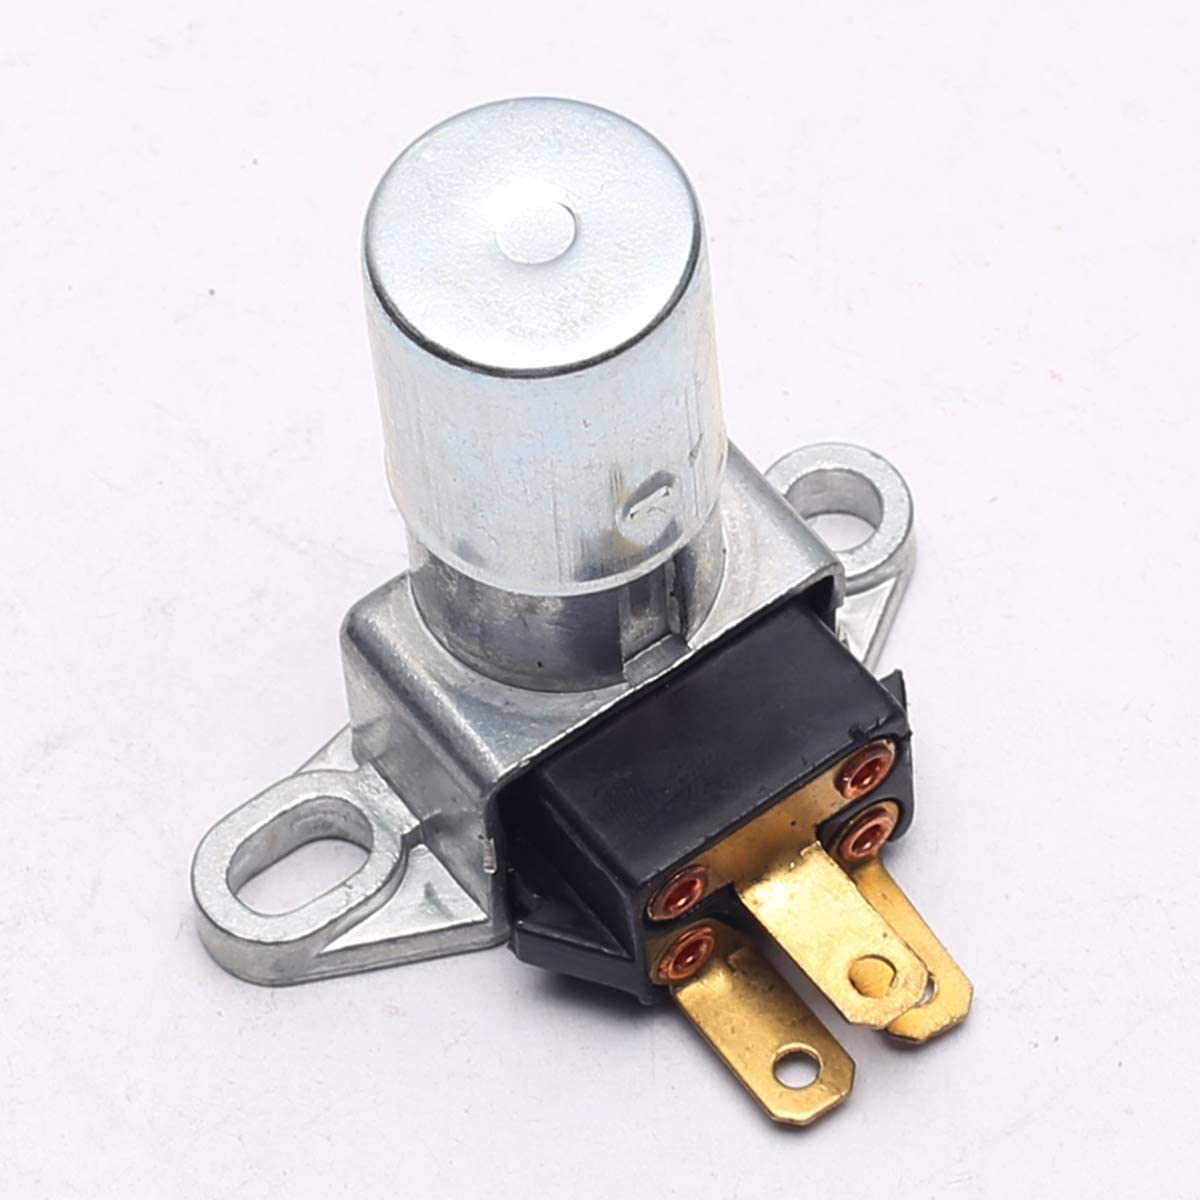 PeakCar Replaces Standard DS-72 DS72T Auto Car Headlamp Dimmer Switch